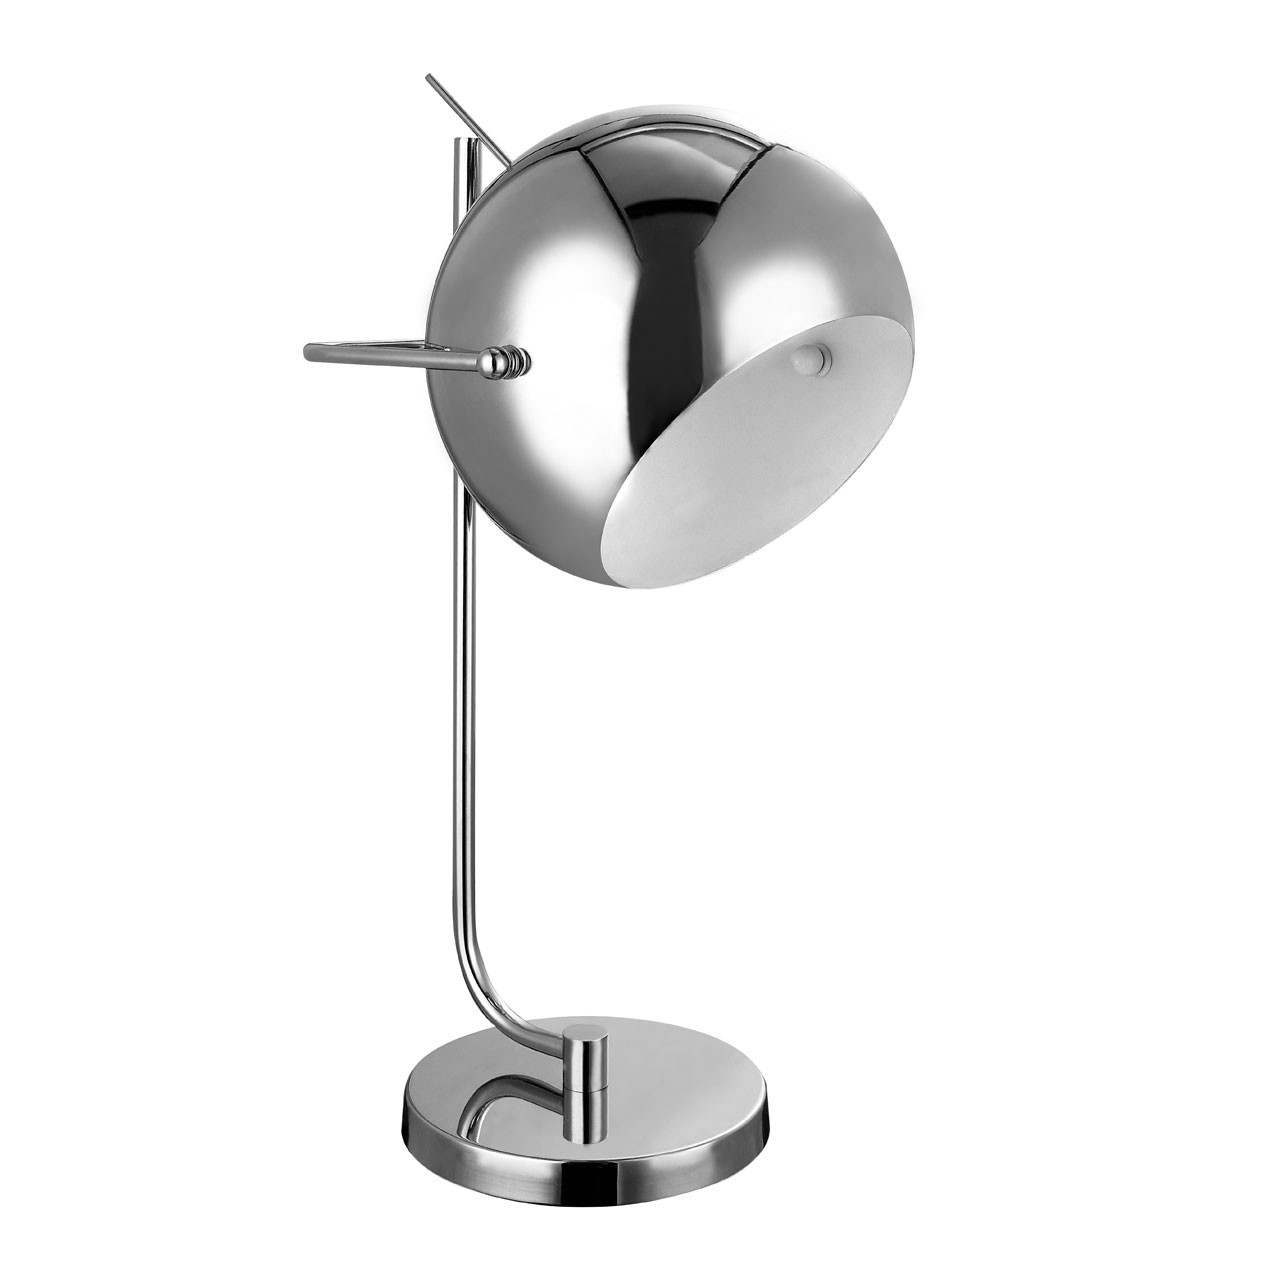 Prime Furnishing E27 Edison Screw 60 W Table Lamp - Chrome